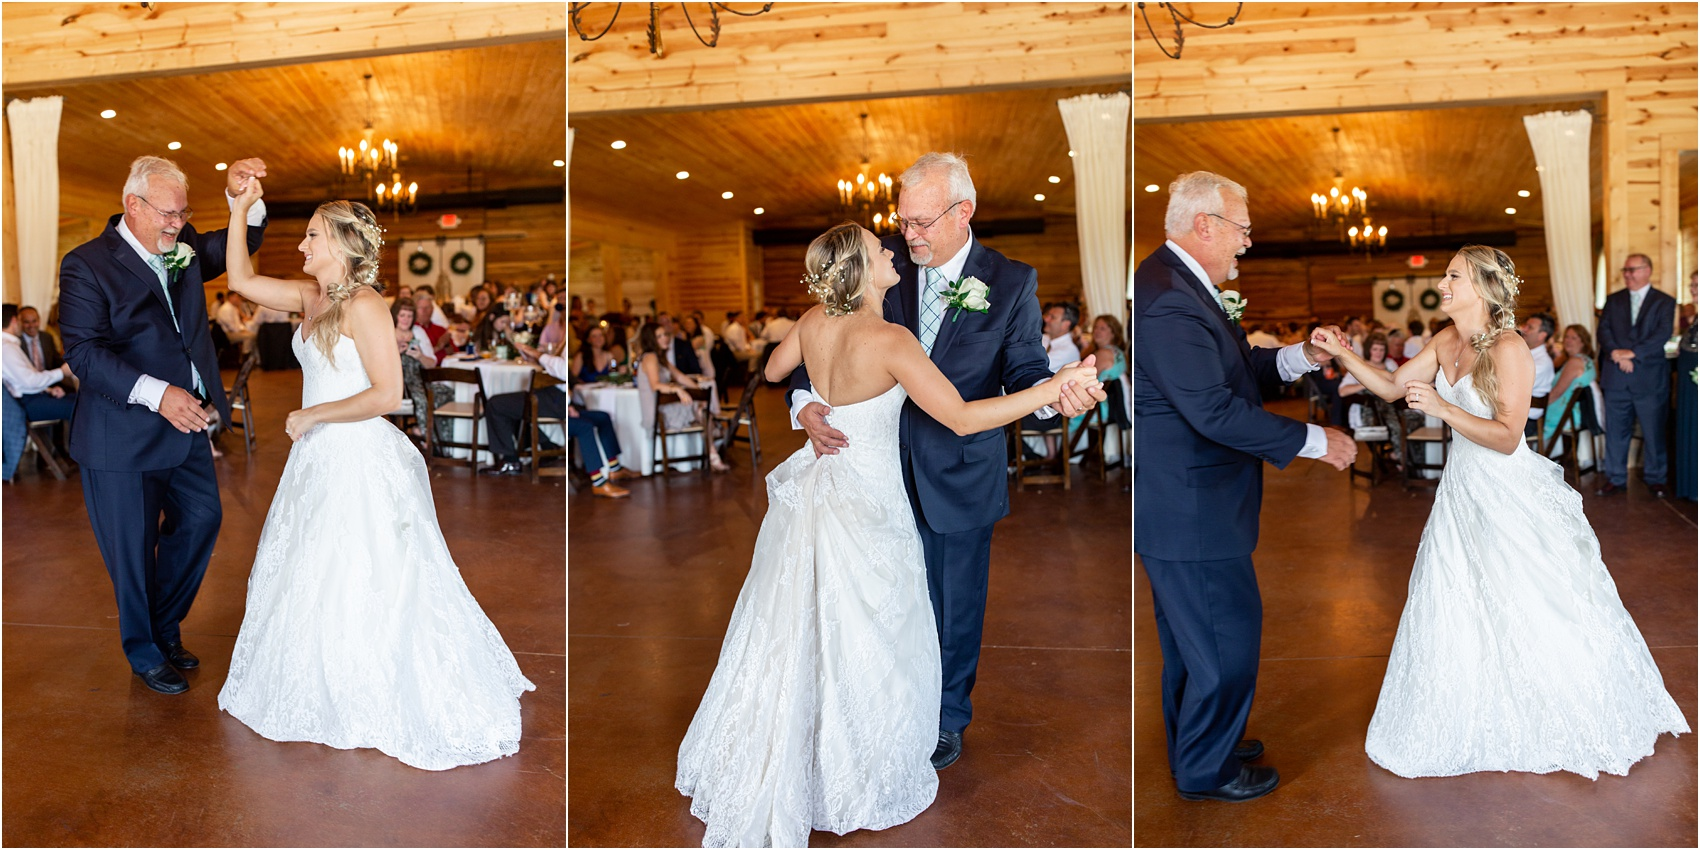 Savannah Eve Photography LLC- Wandolowski-Boyer Wedding-Blog-57.jpg